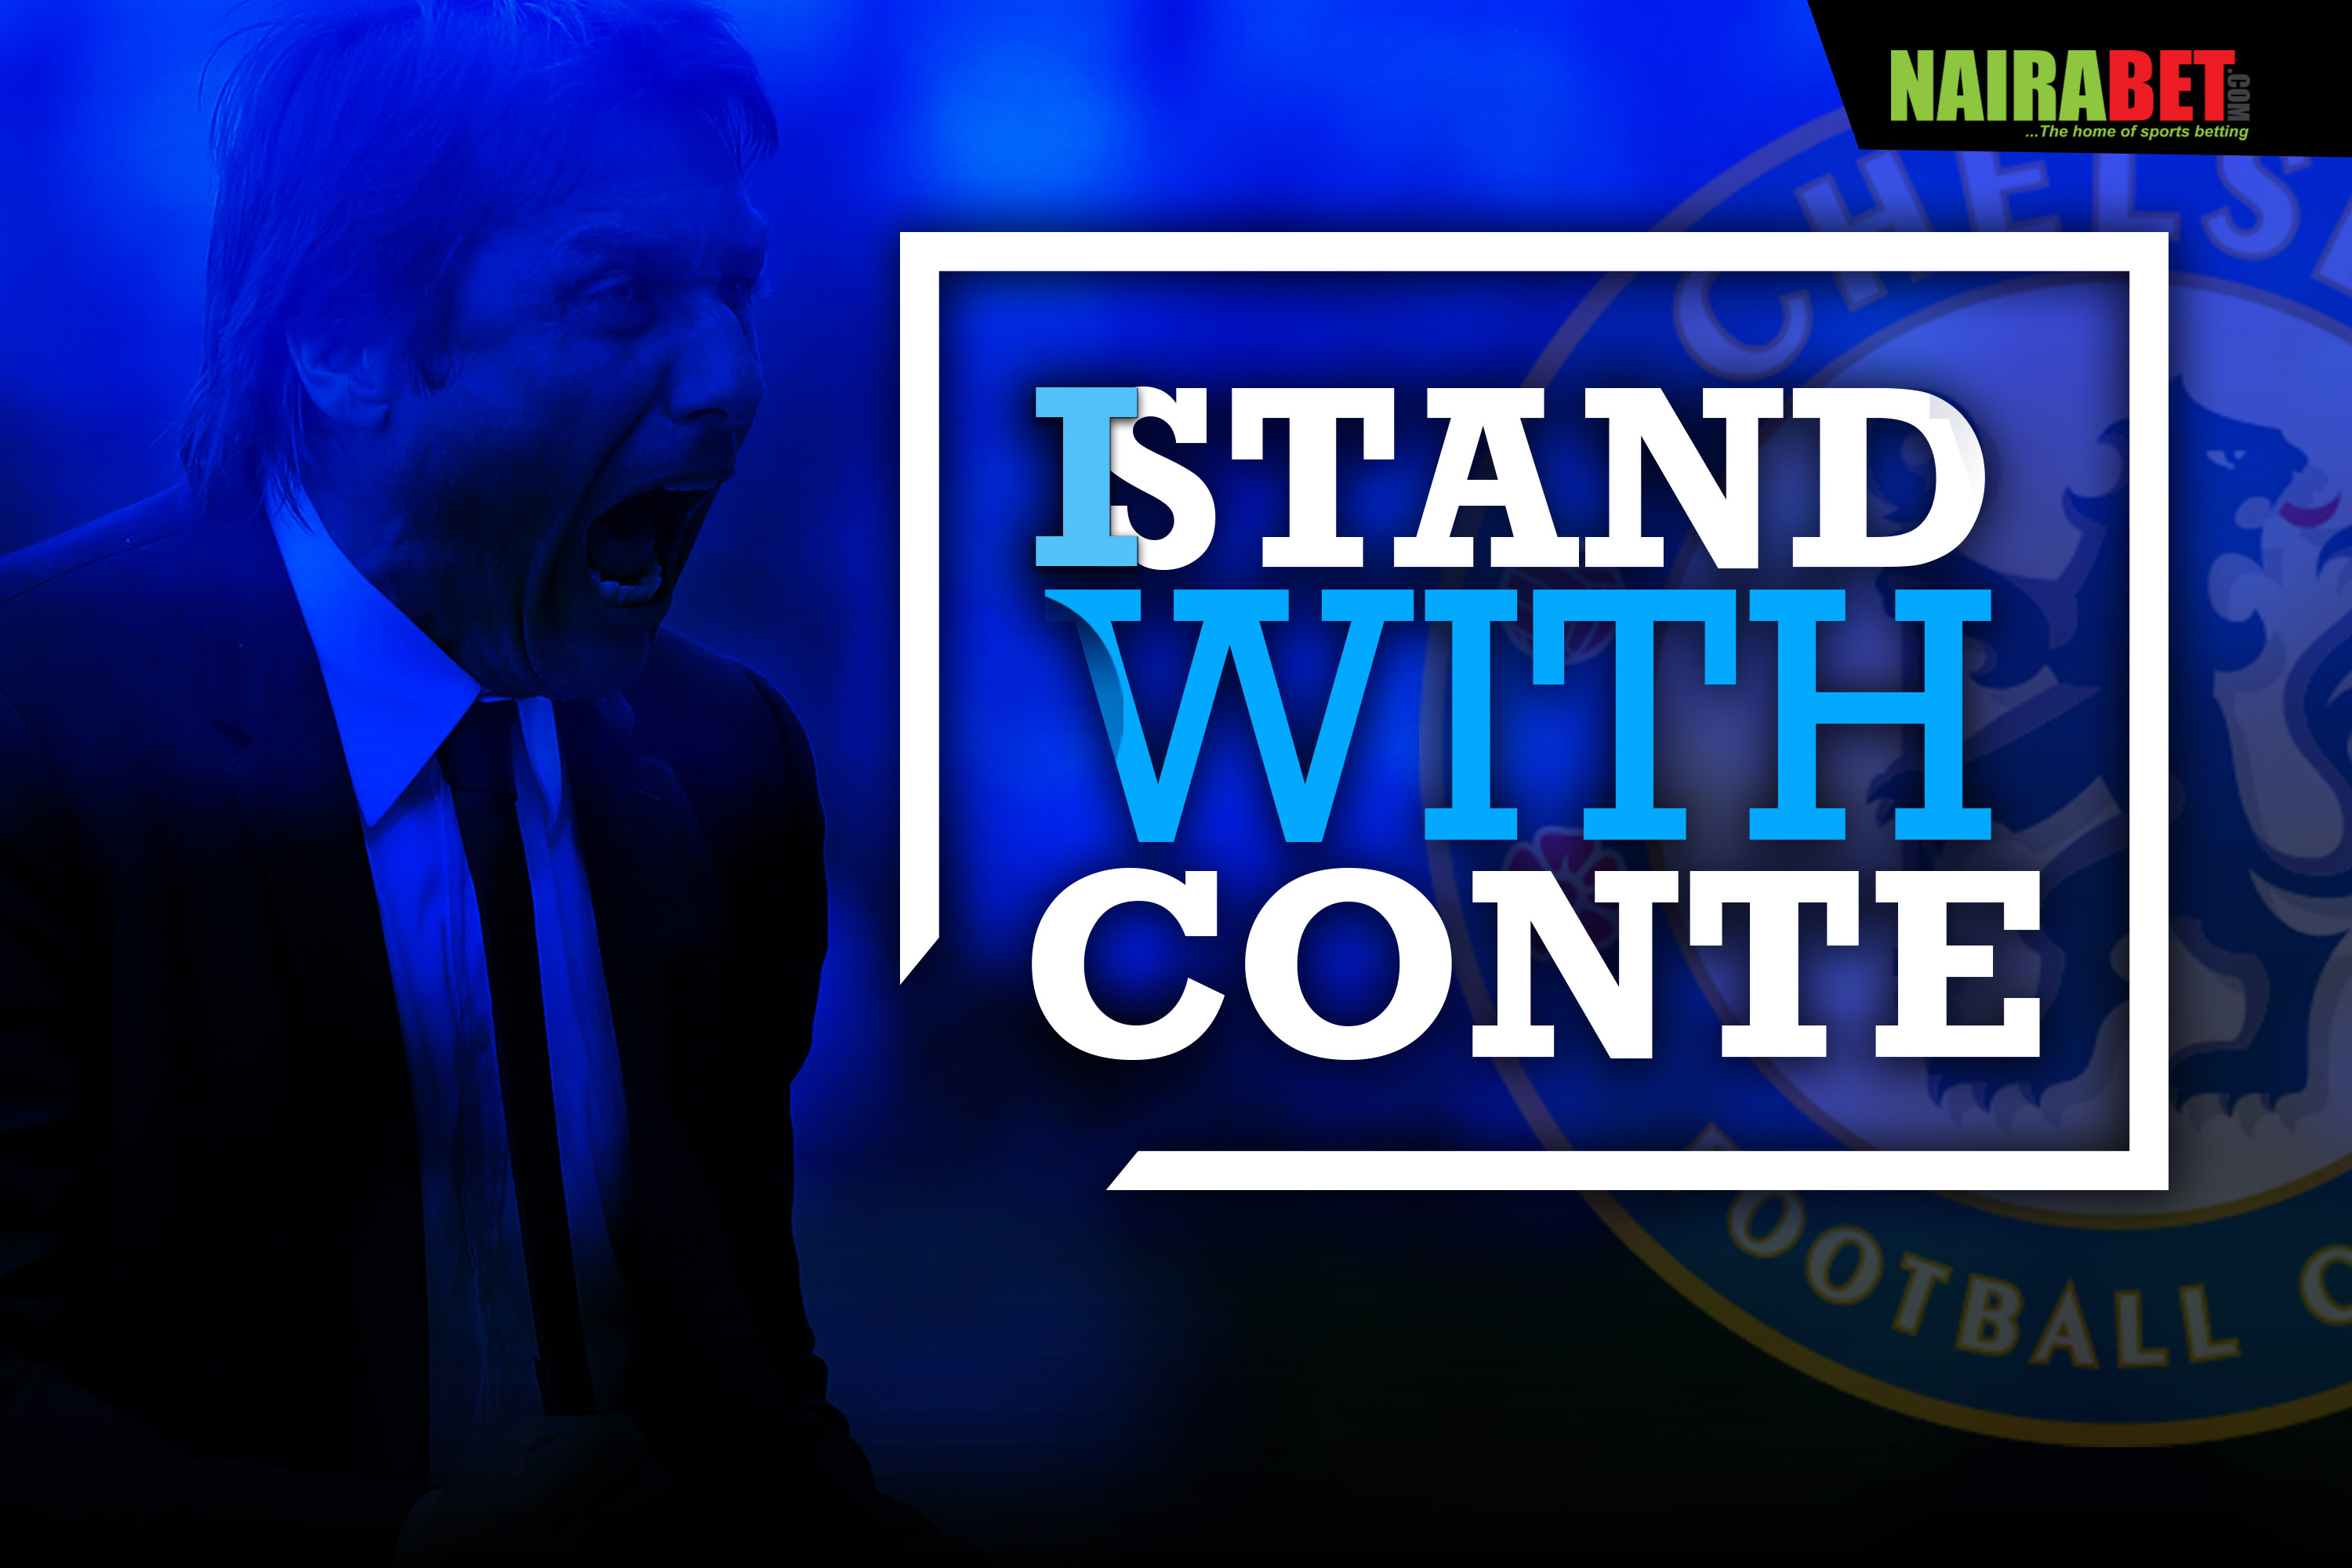 i stand with conte